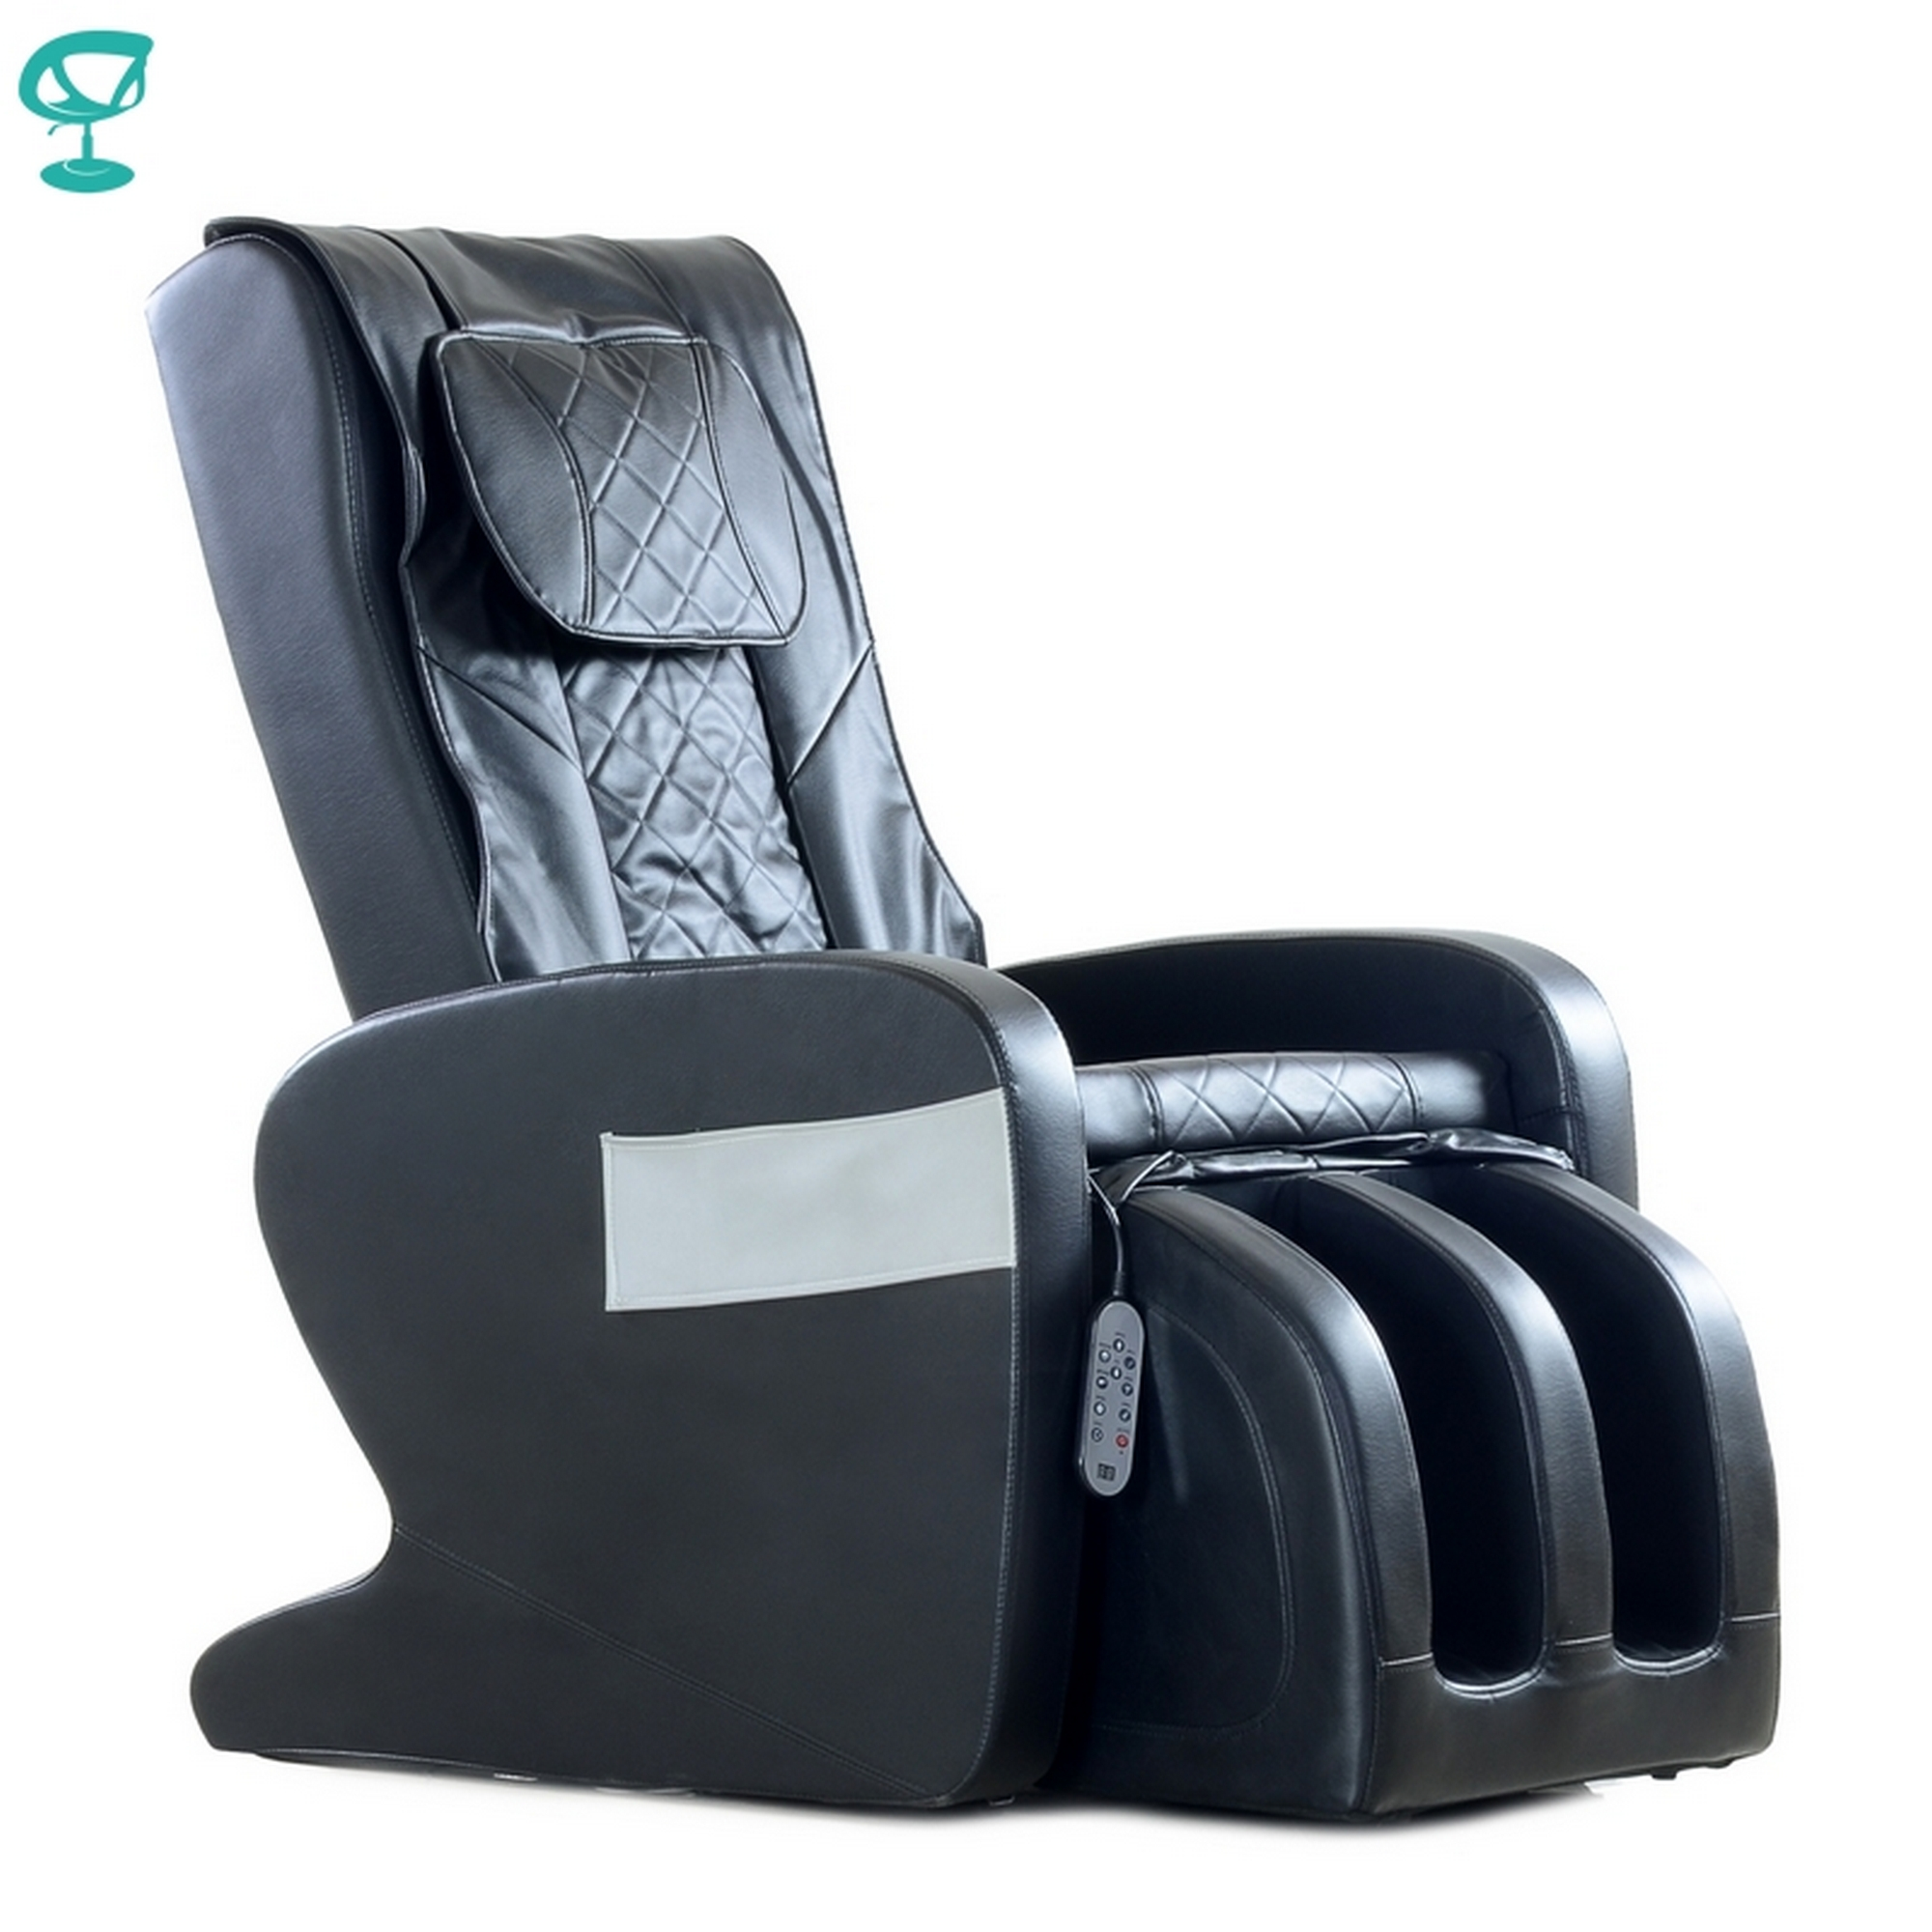 95686 Barneo Fav-S1 Chair Massage Black Eco-leather Chair Massage Chair With Massage Chair Free Shipping To Russia